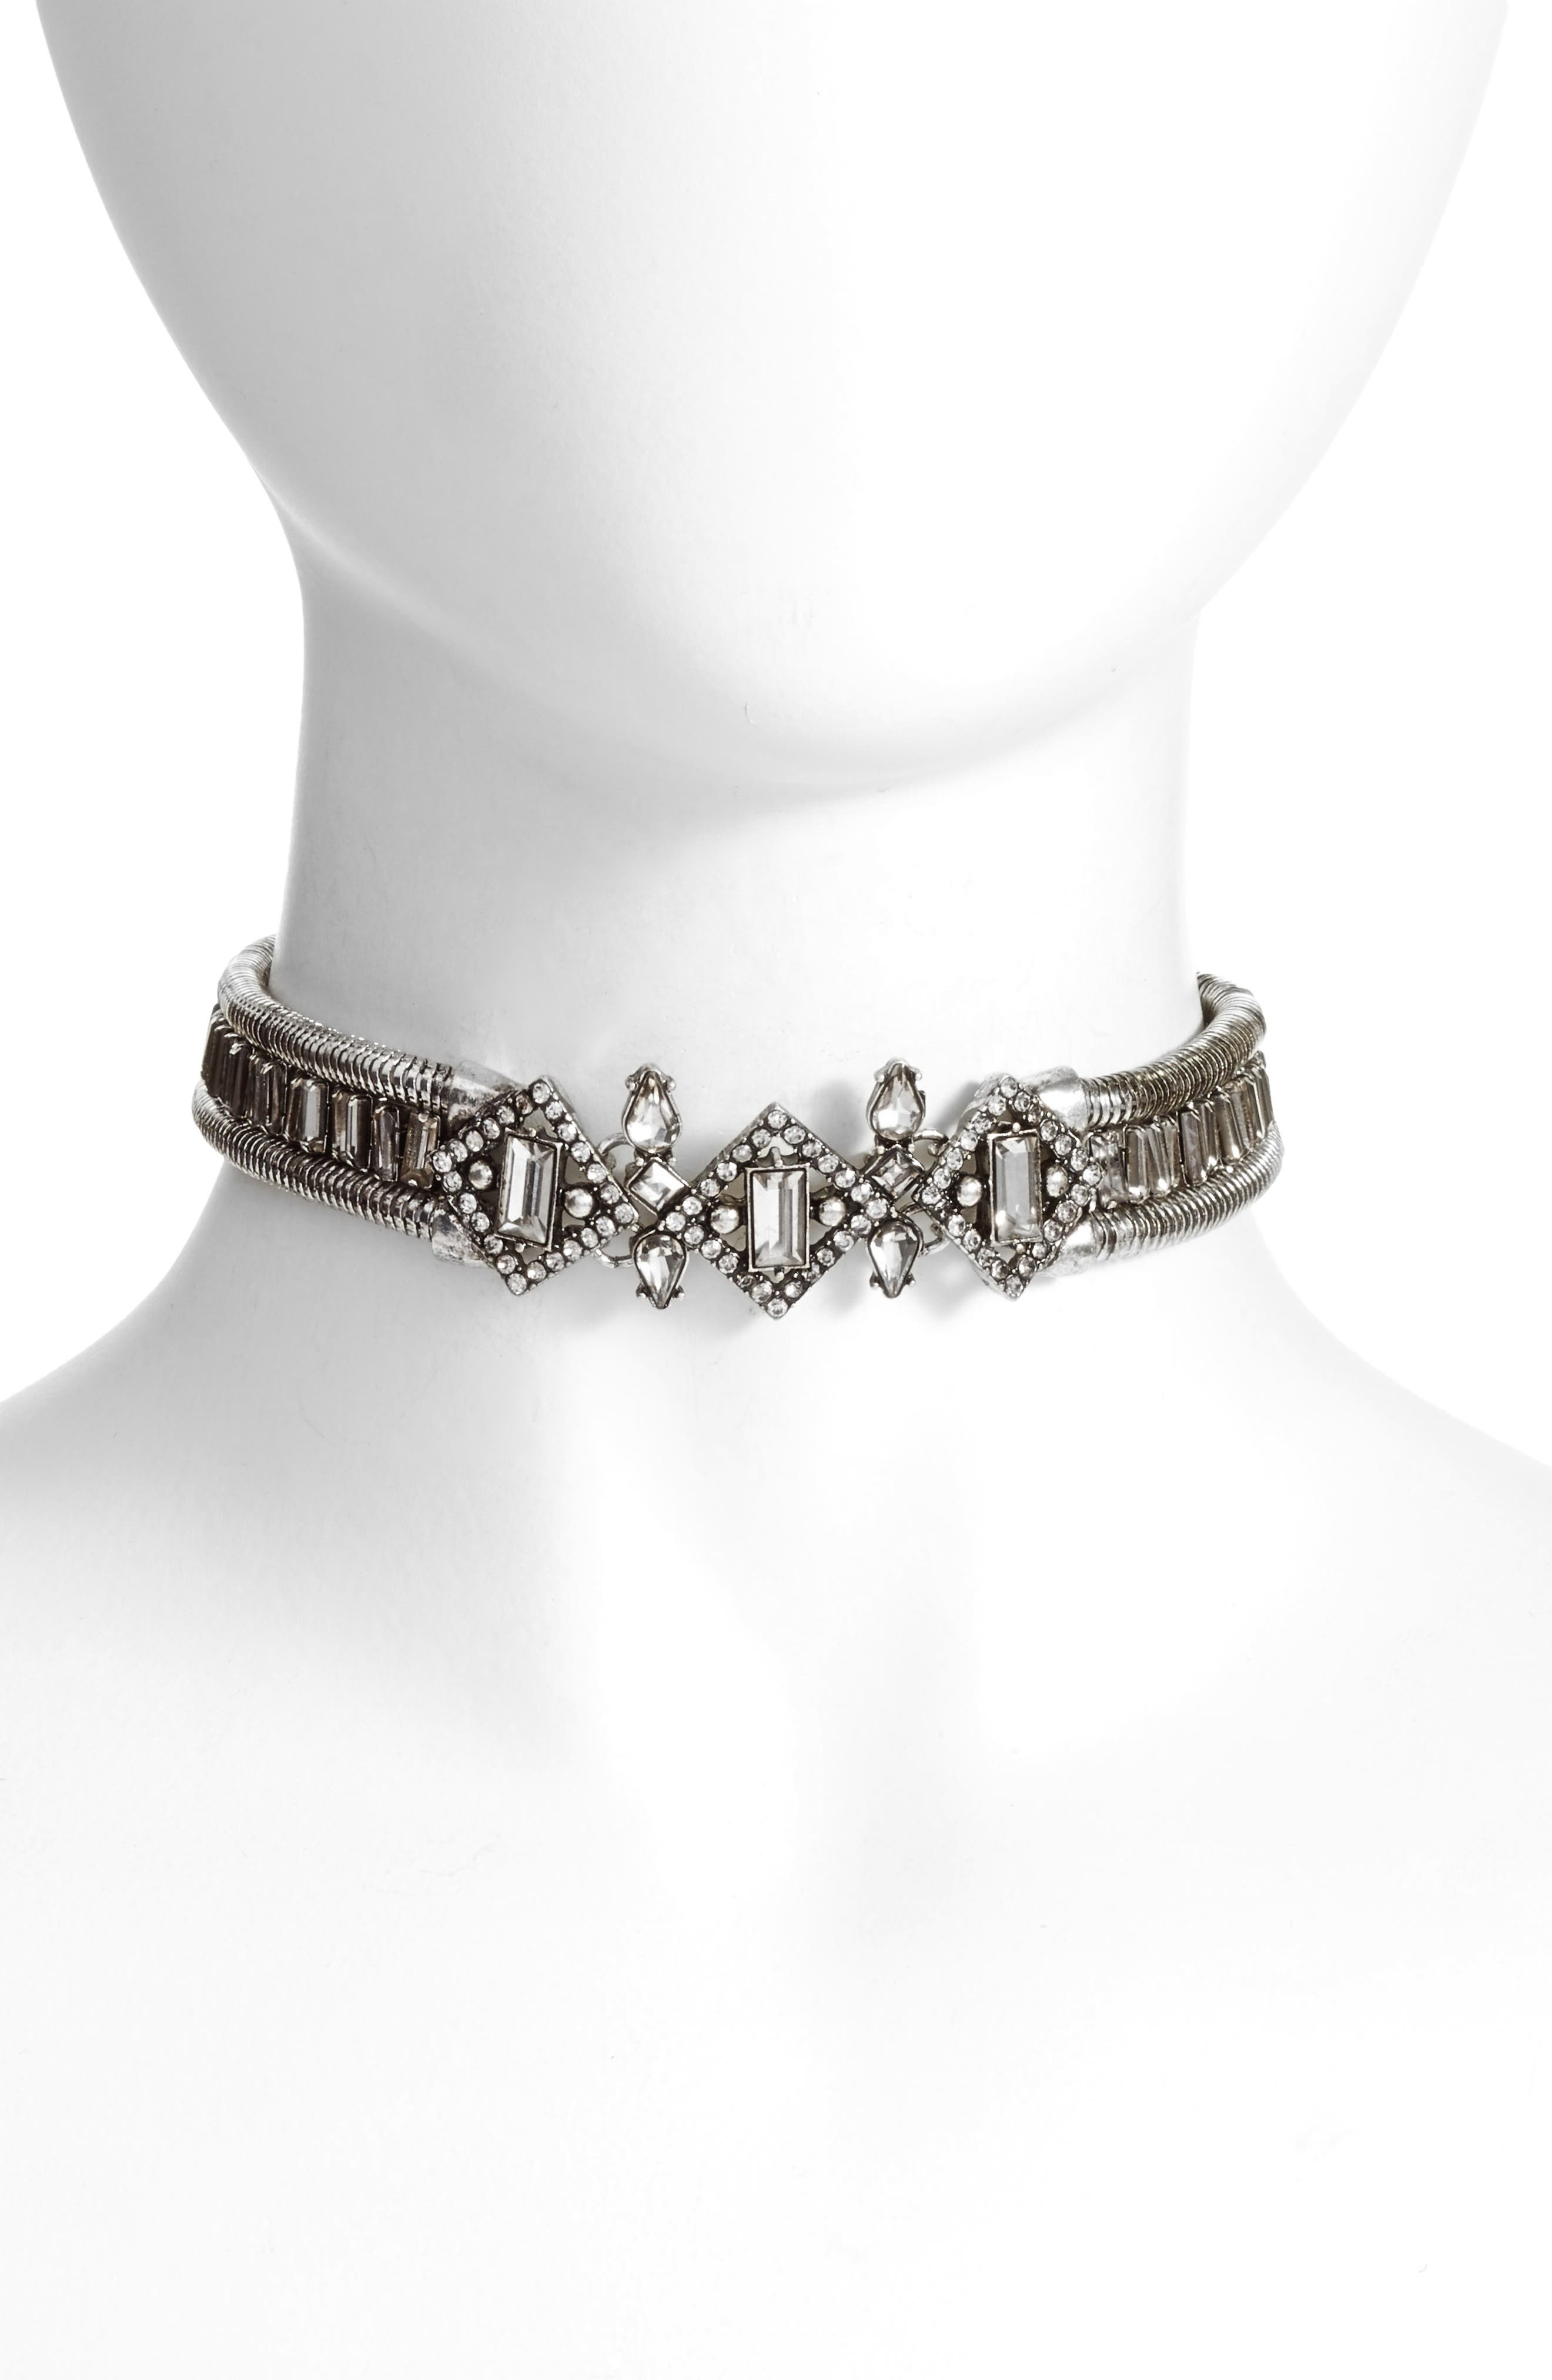 Alternate Image 1 Selected - DLNLX BY DYLANLEX Crystal Choker Necklace